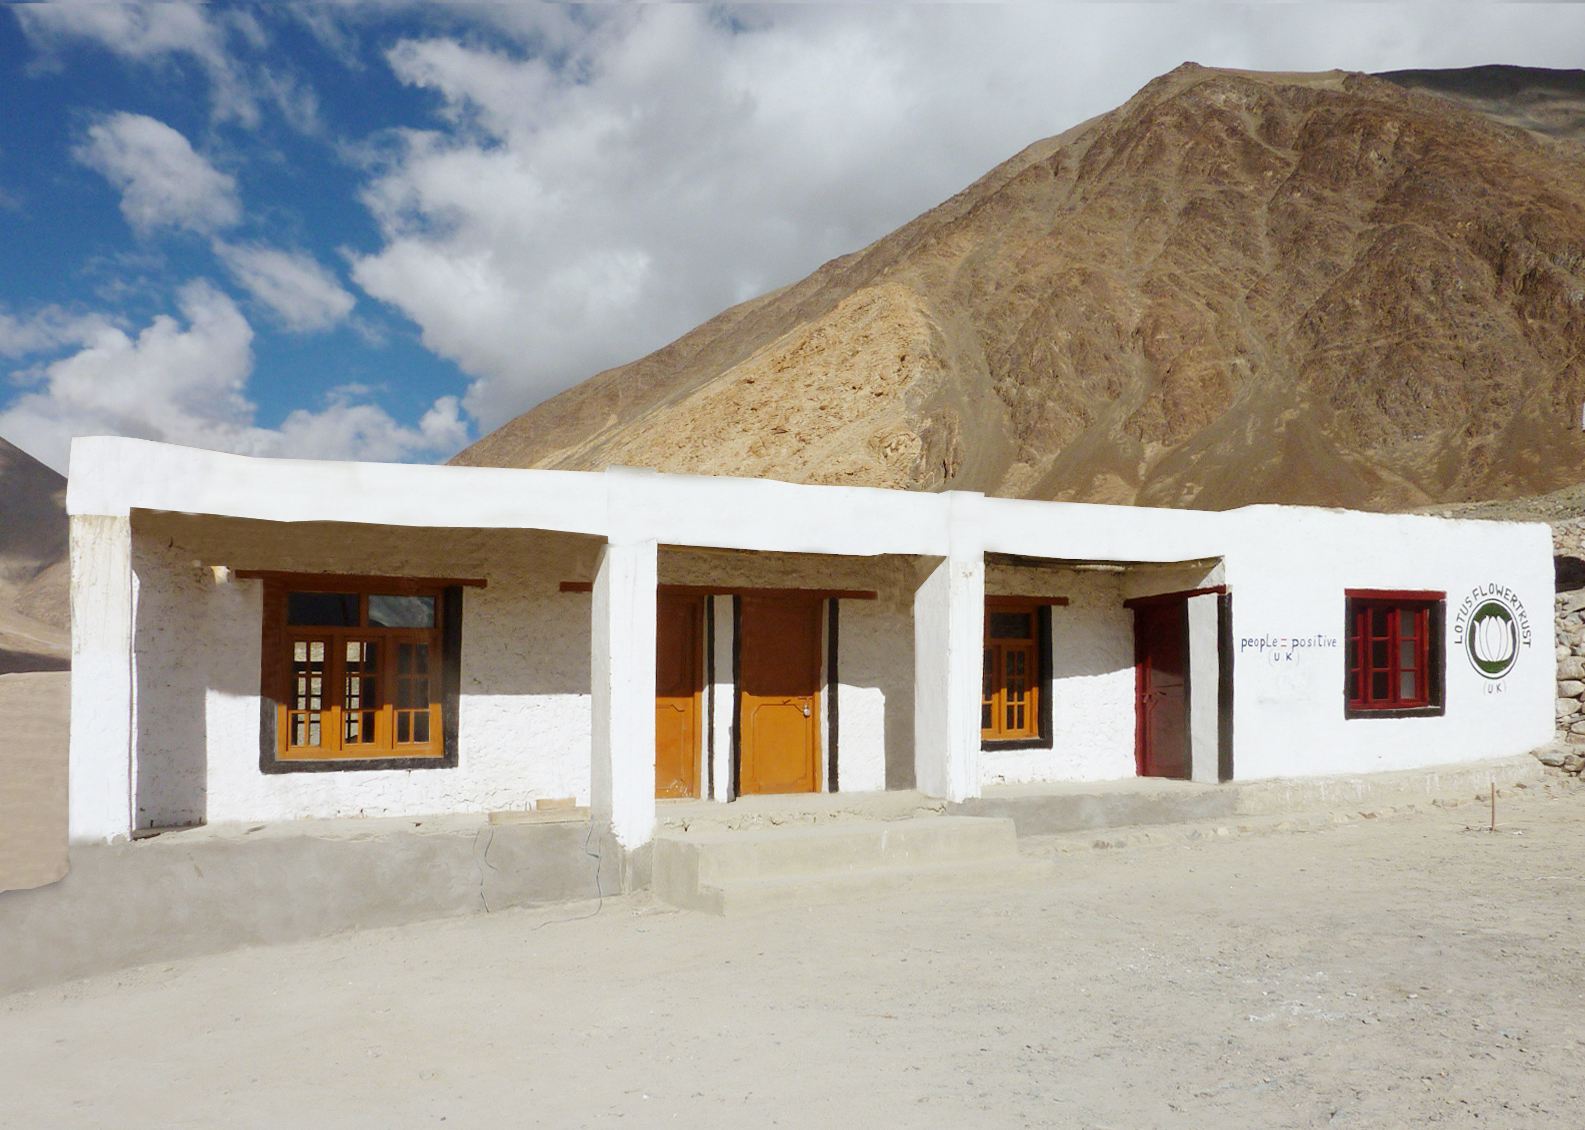 Upper Tharuk Primary School, Ladakh - Funded by Rod Pashley, Family and Friends